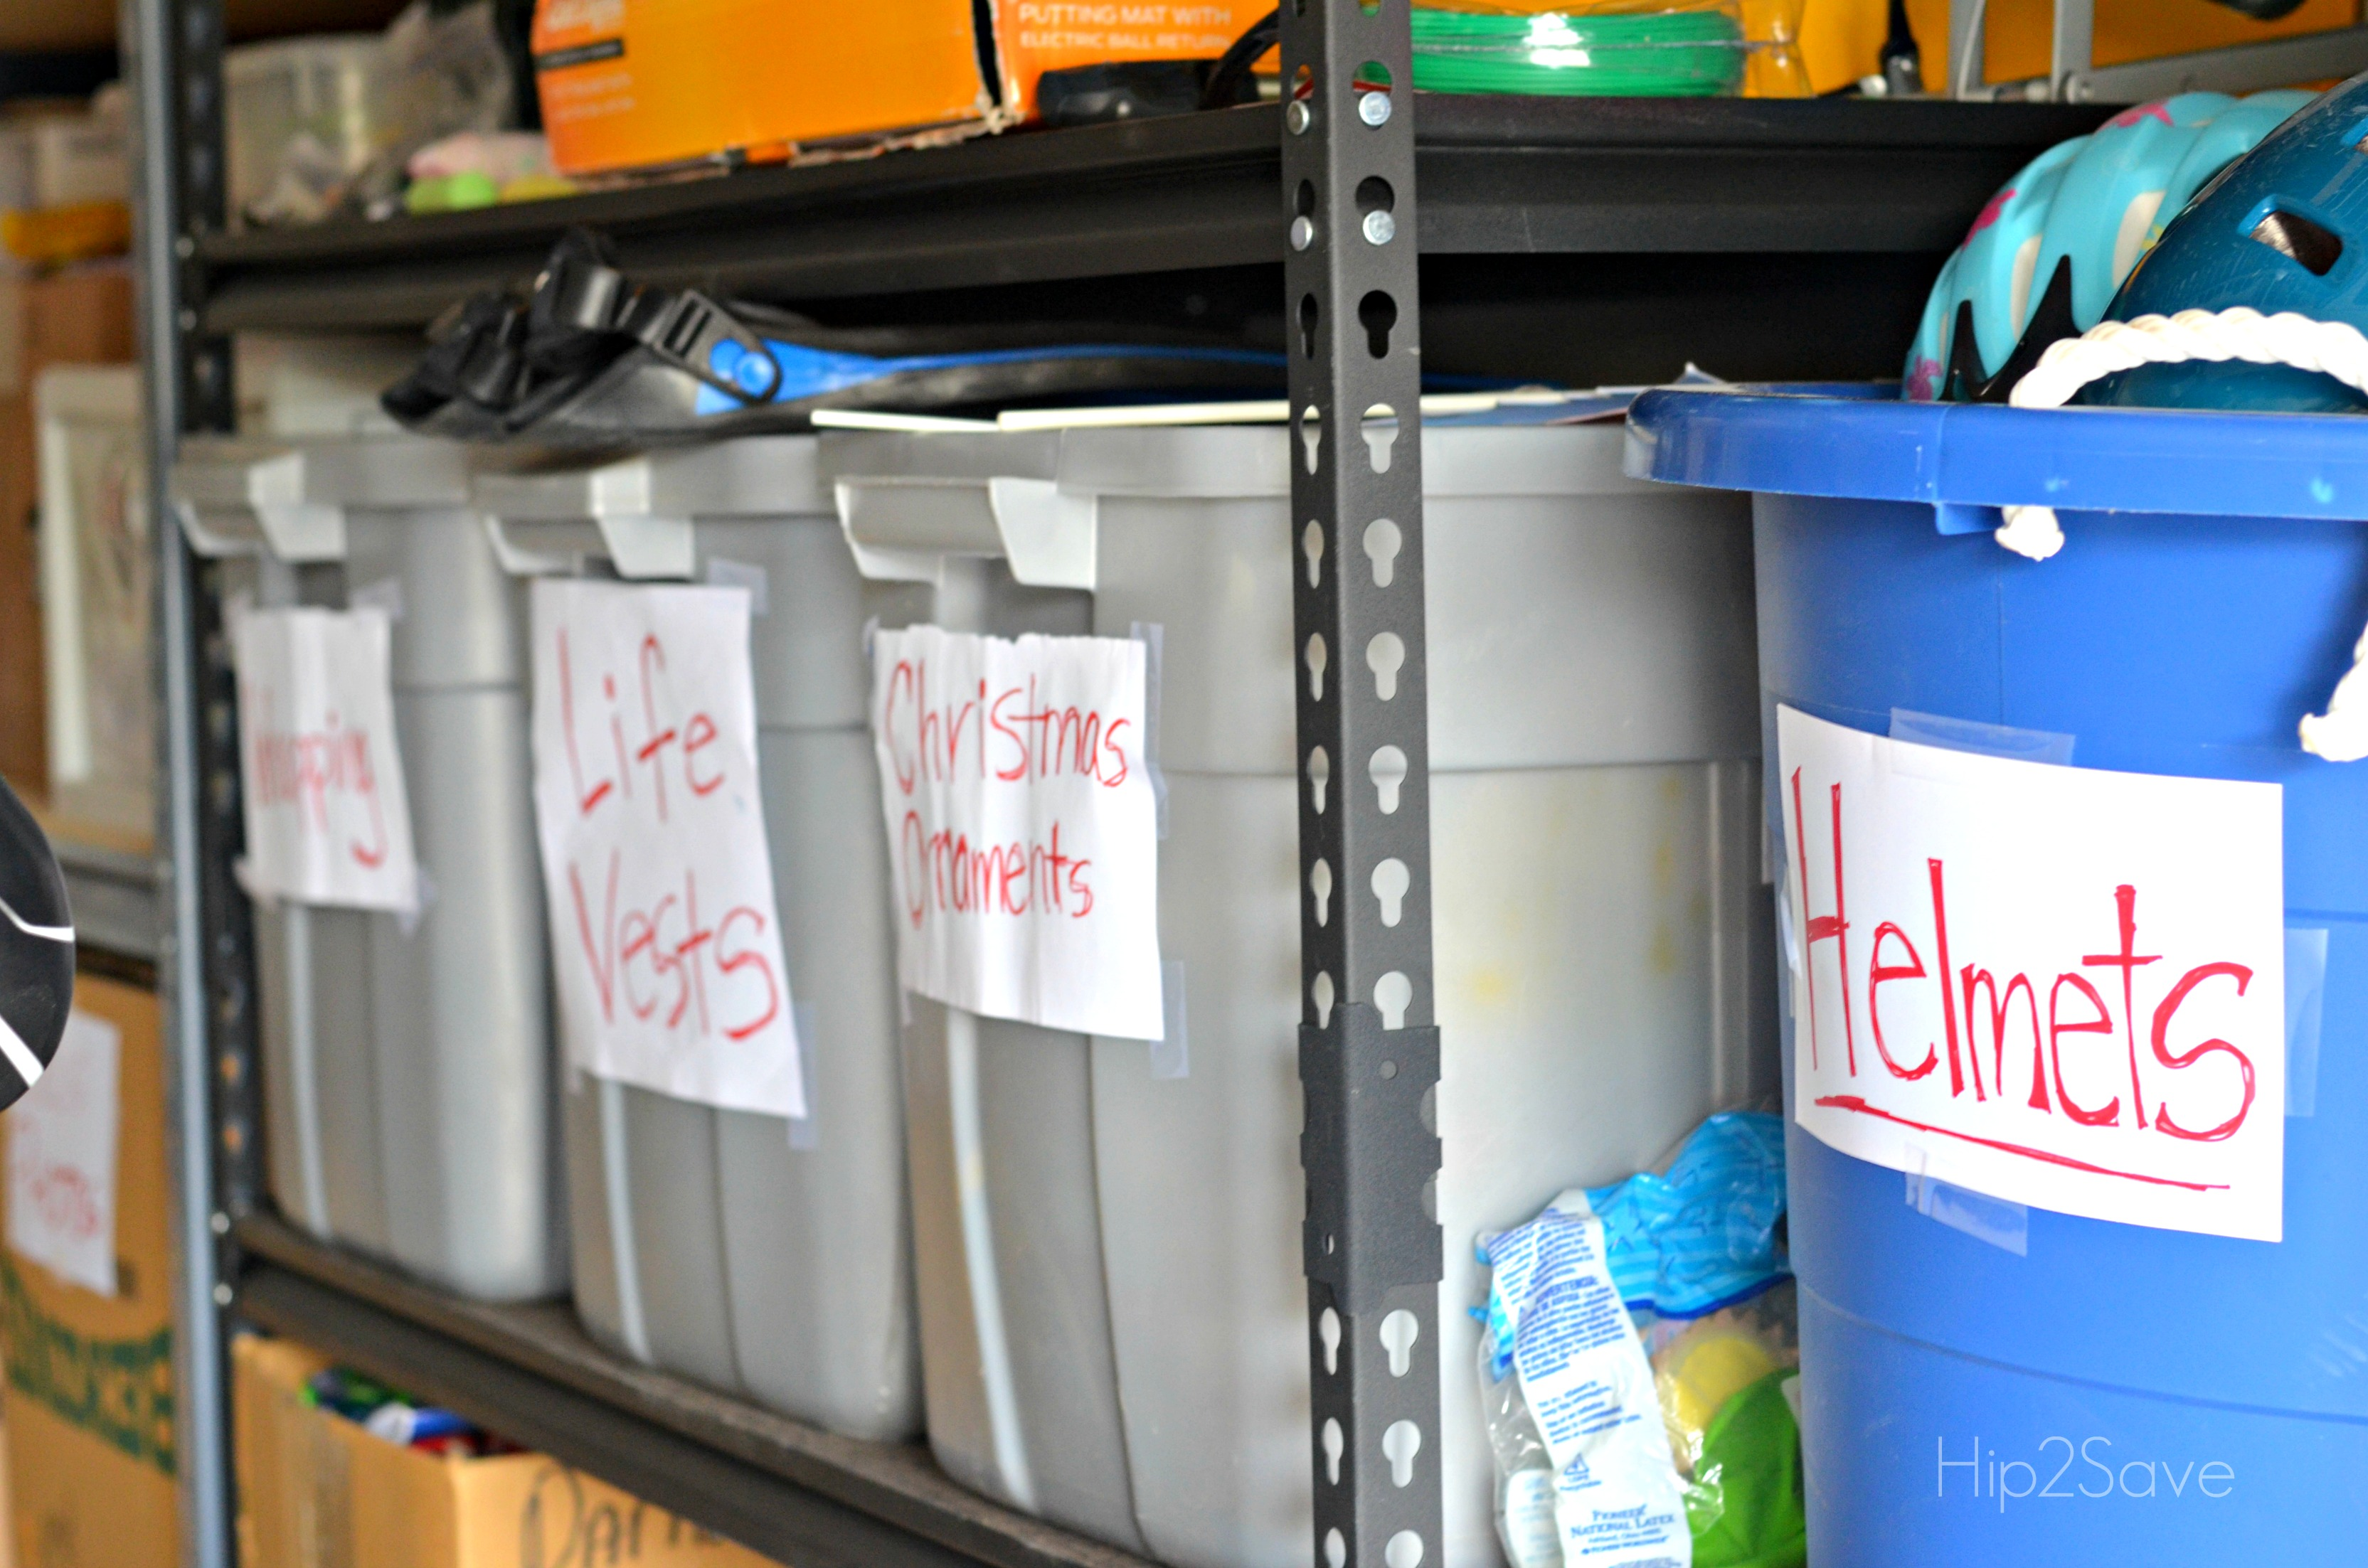 Labeling Garage Contents Hip2Save